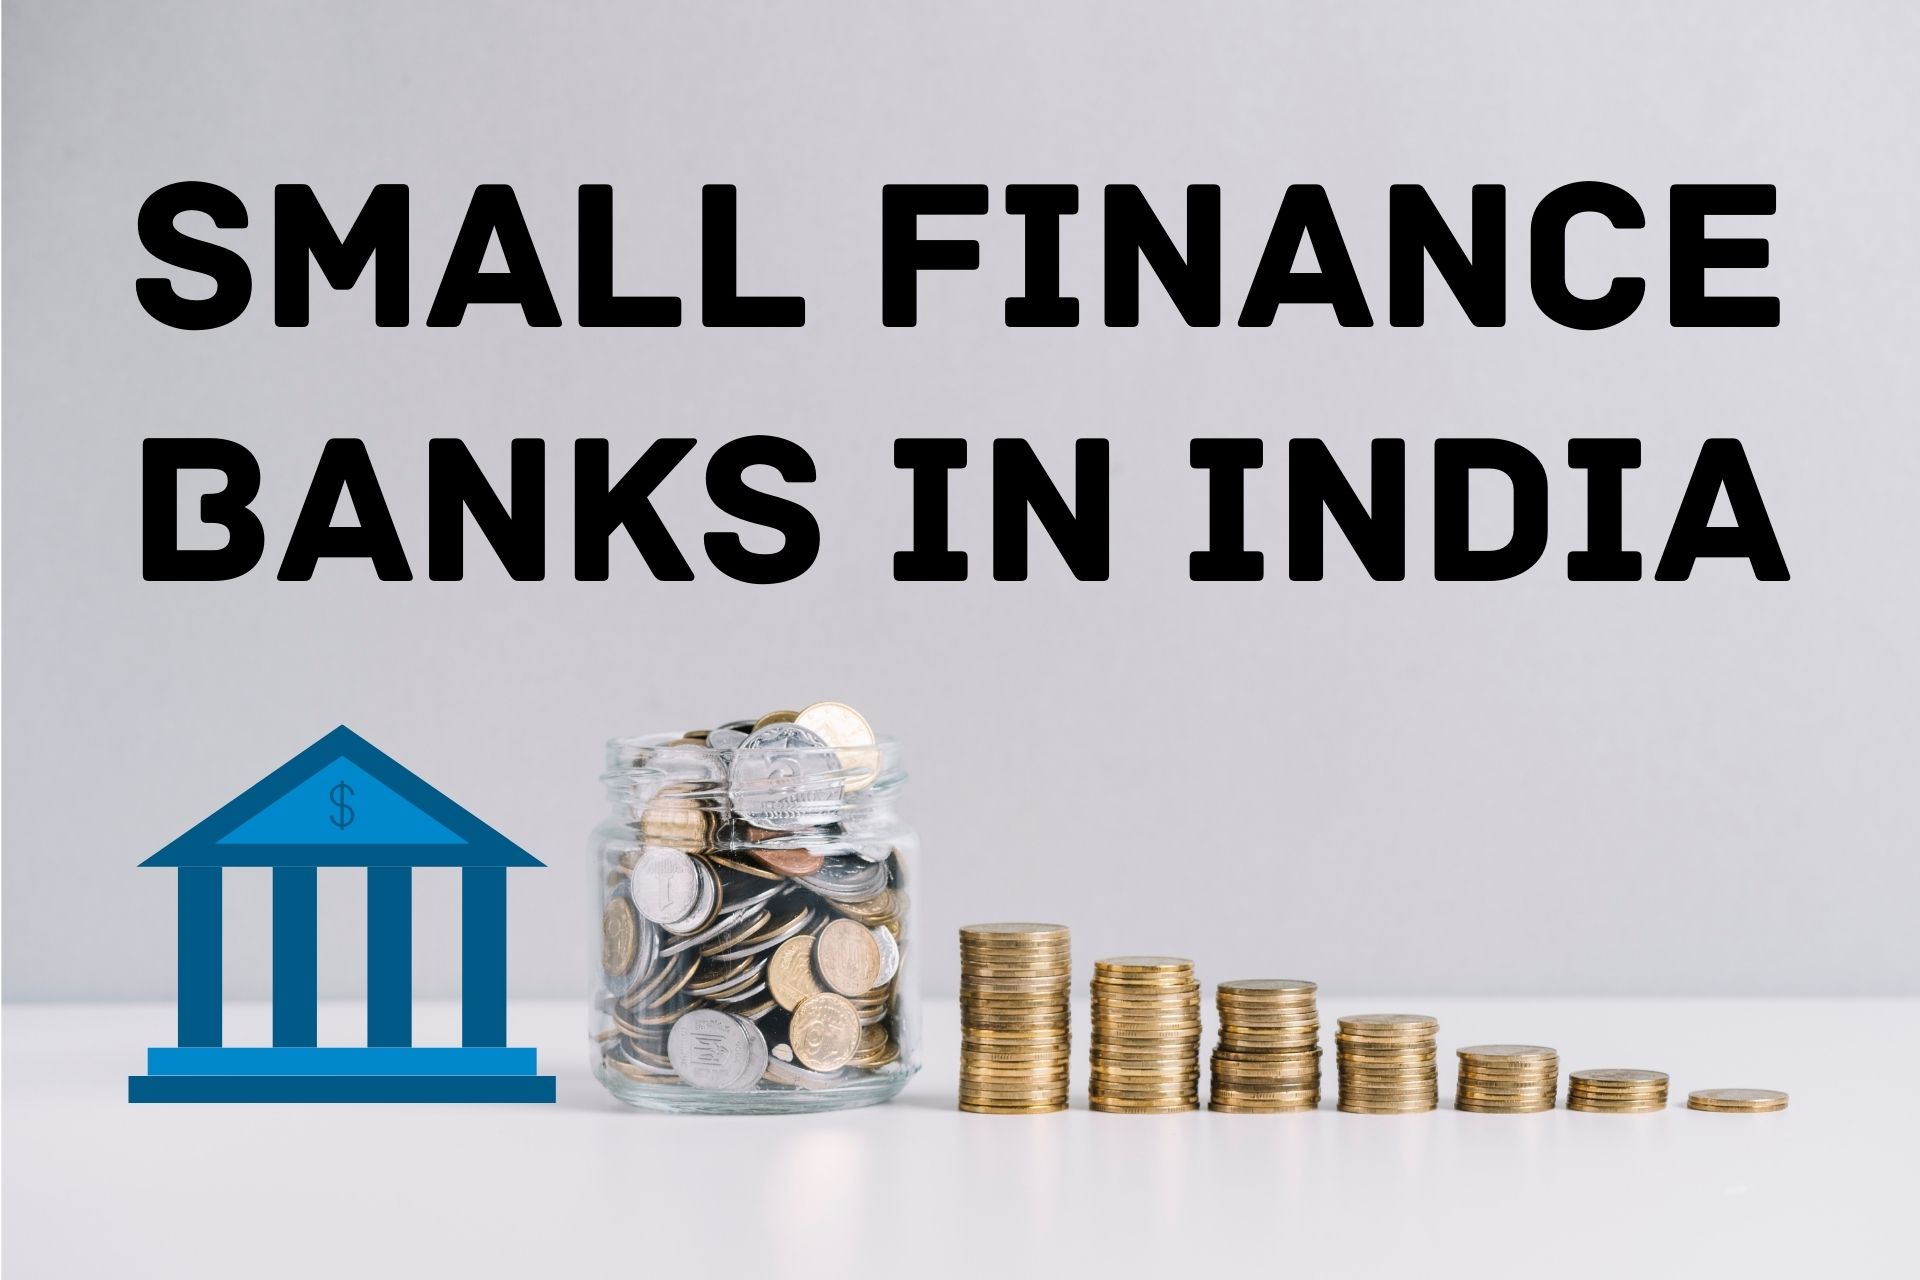 Small Finance Banks Explained: Top Small Finance Banks in India!